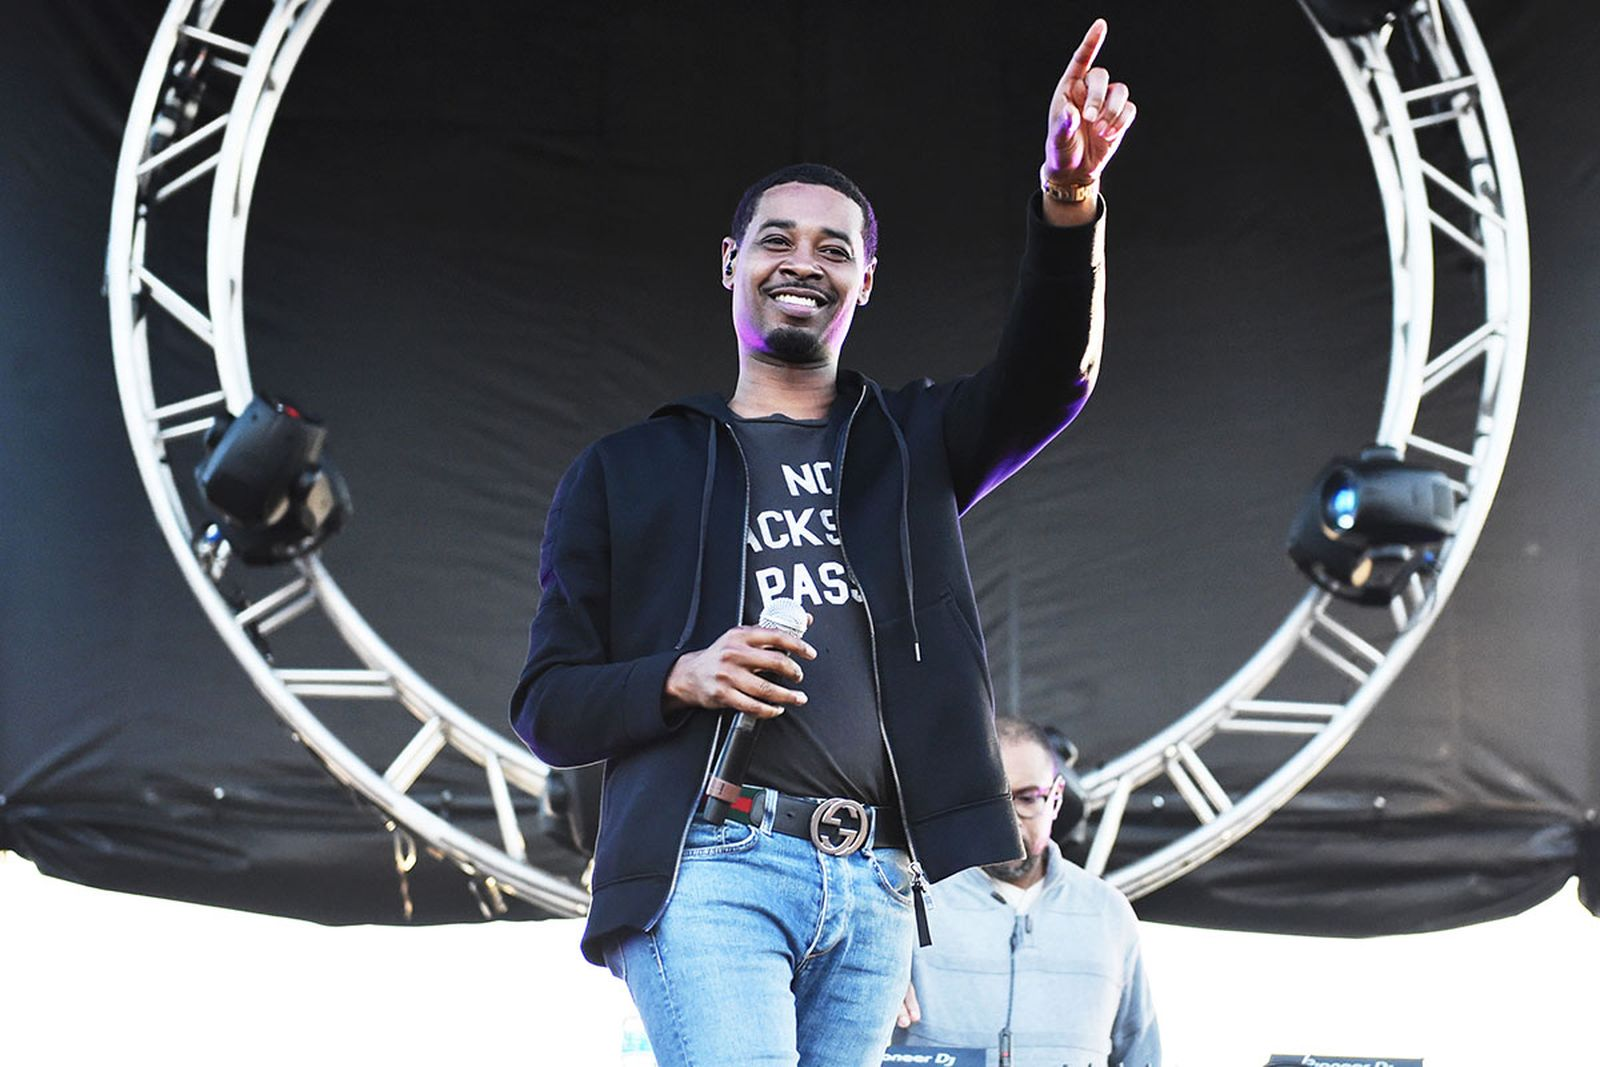 Danny brown performs wearing black blazer, tee and jeans